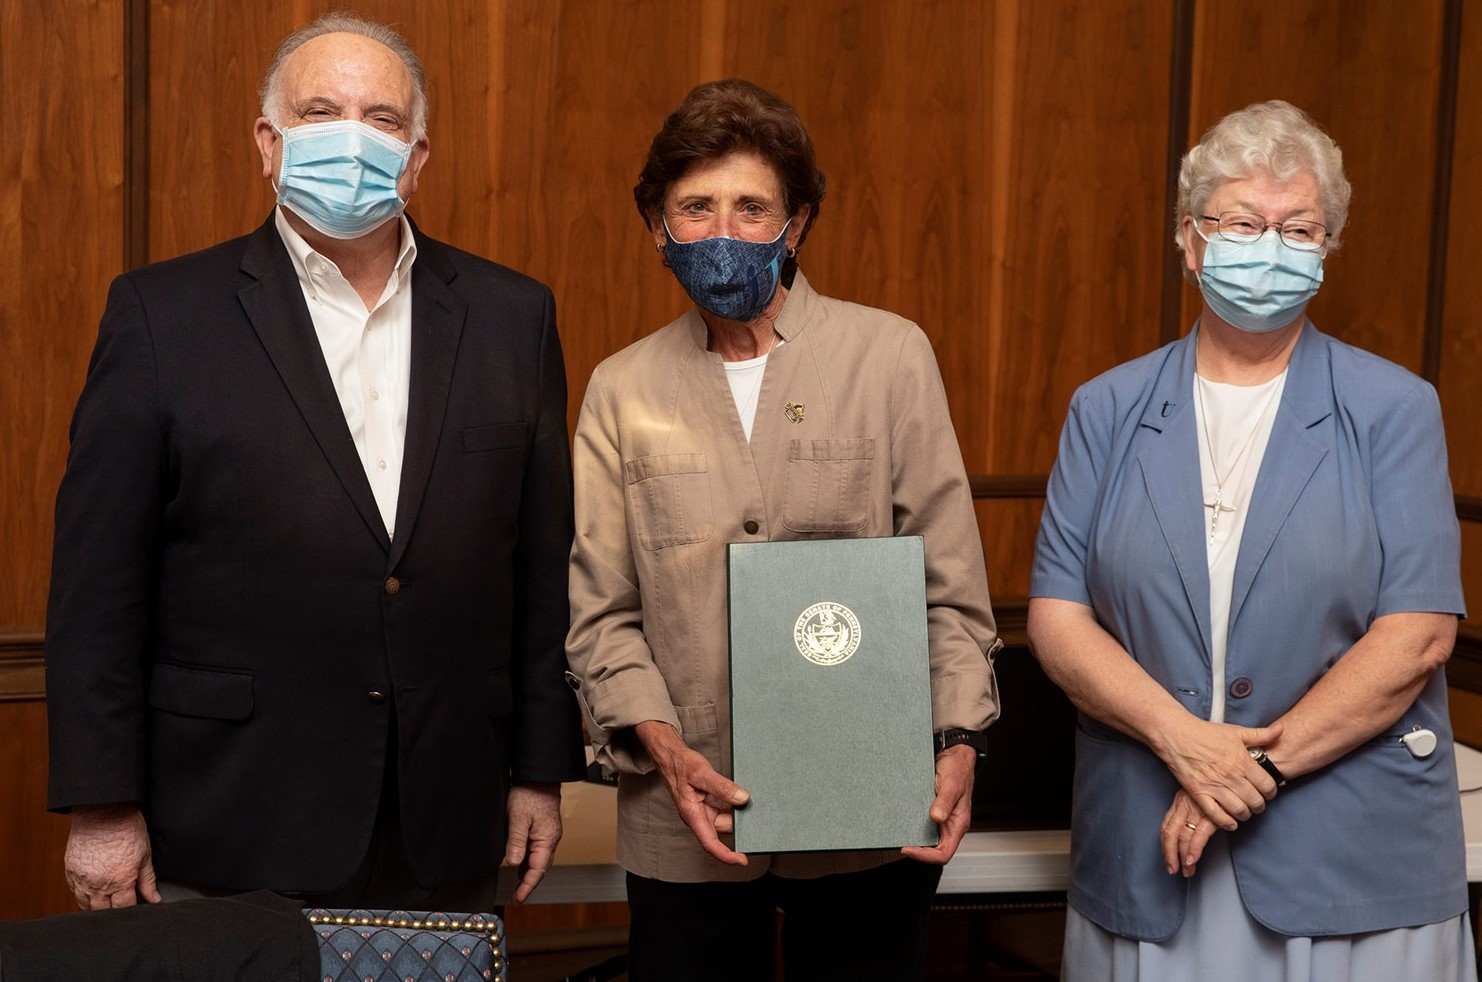 State Sen. Dinniman Presents Special Citation to Immaculata in Recognition of Its Centennial